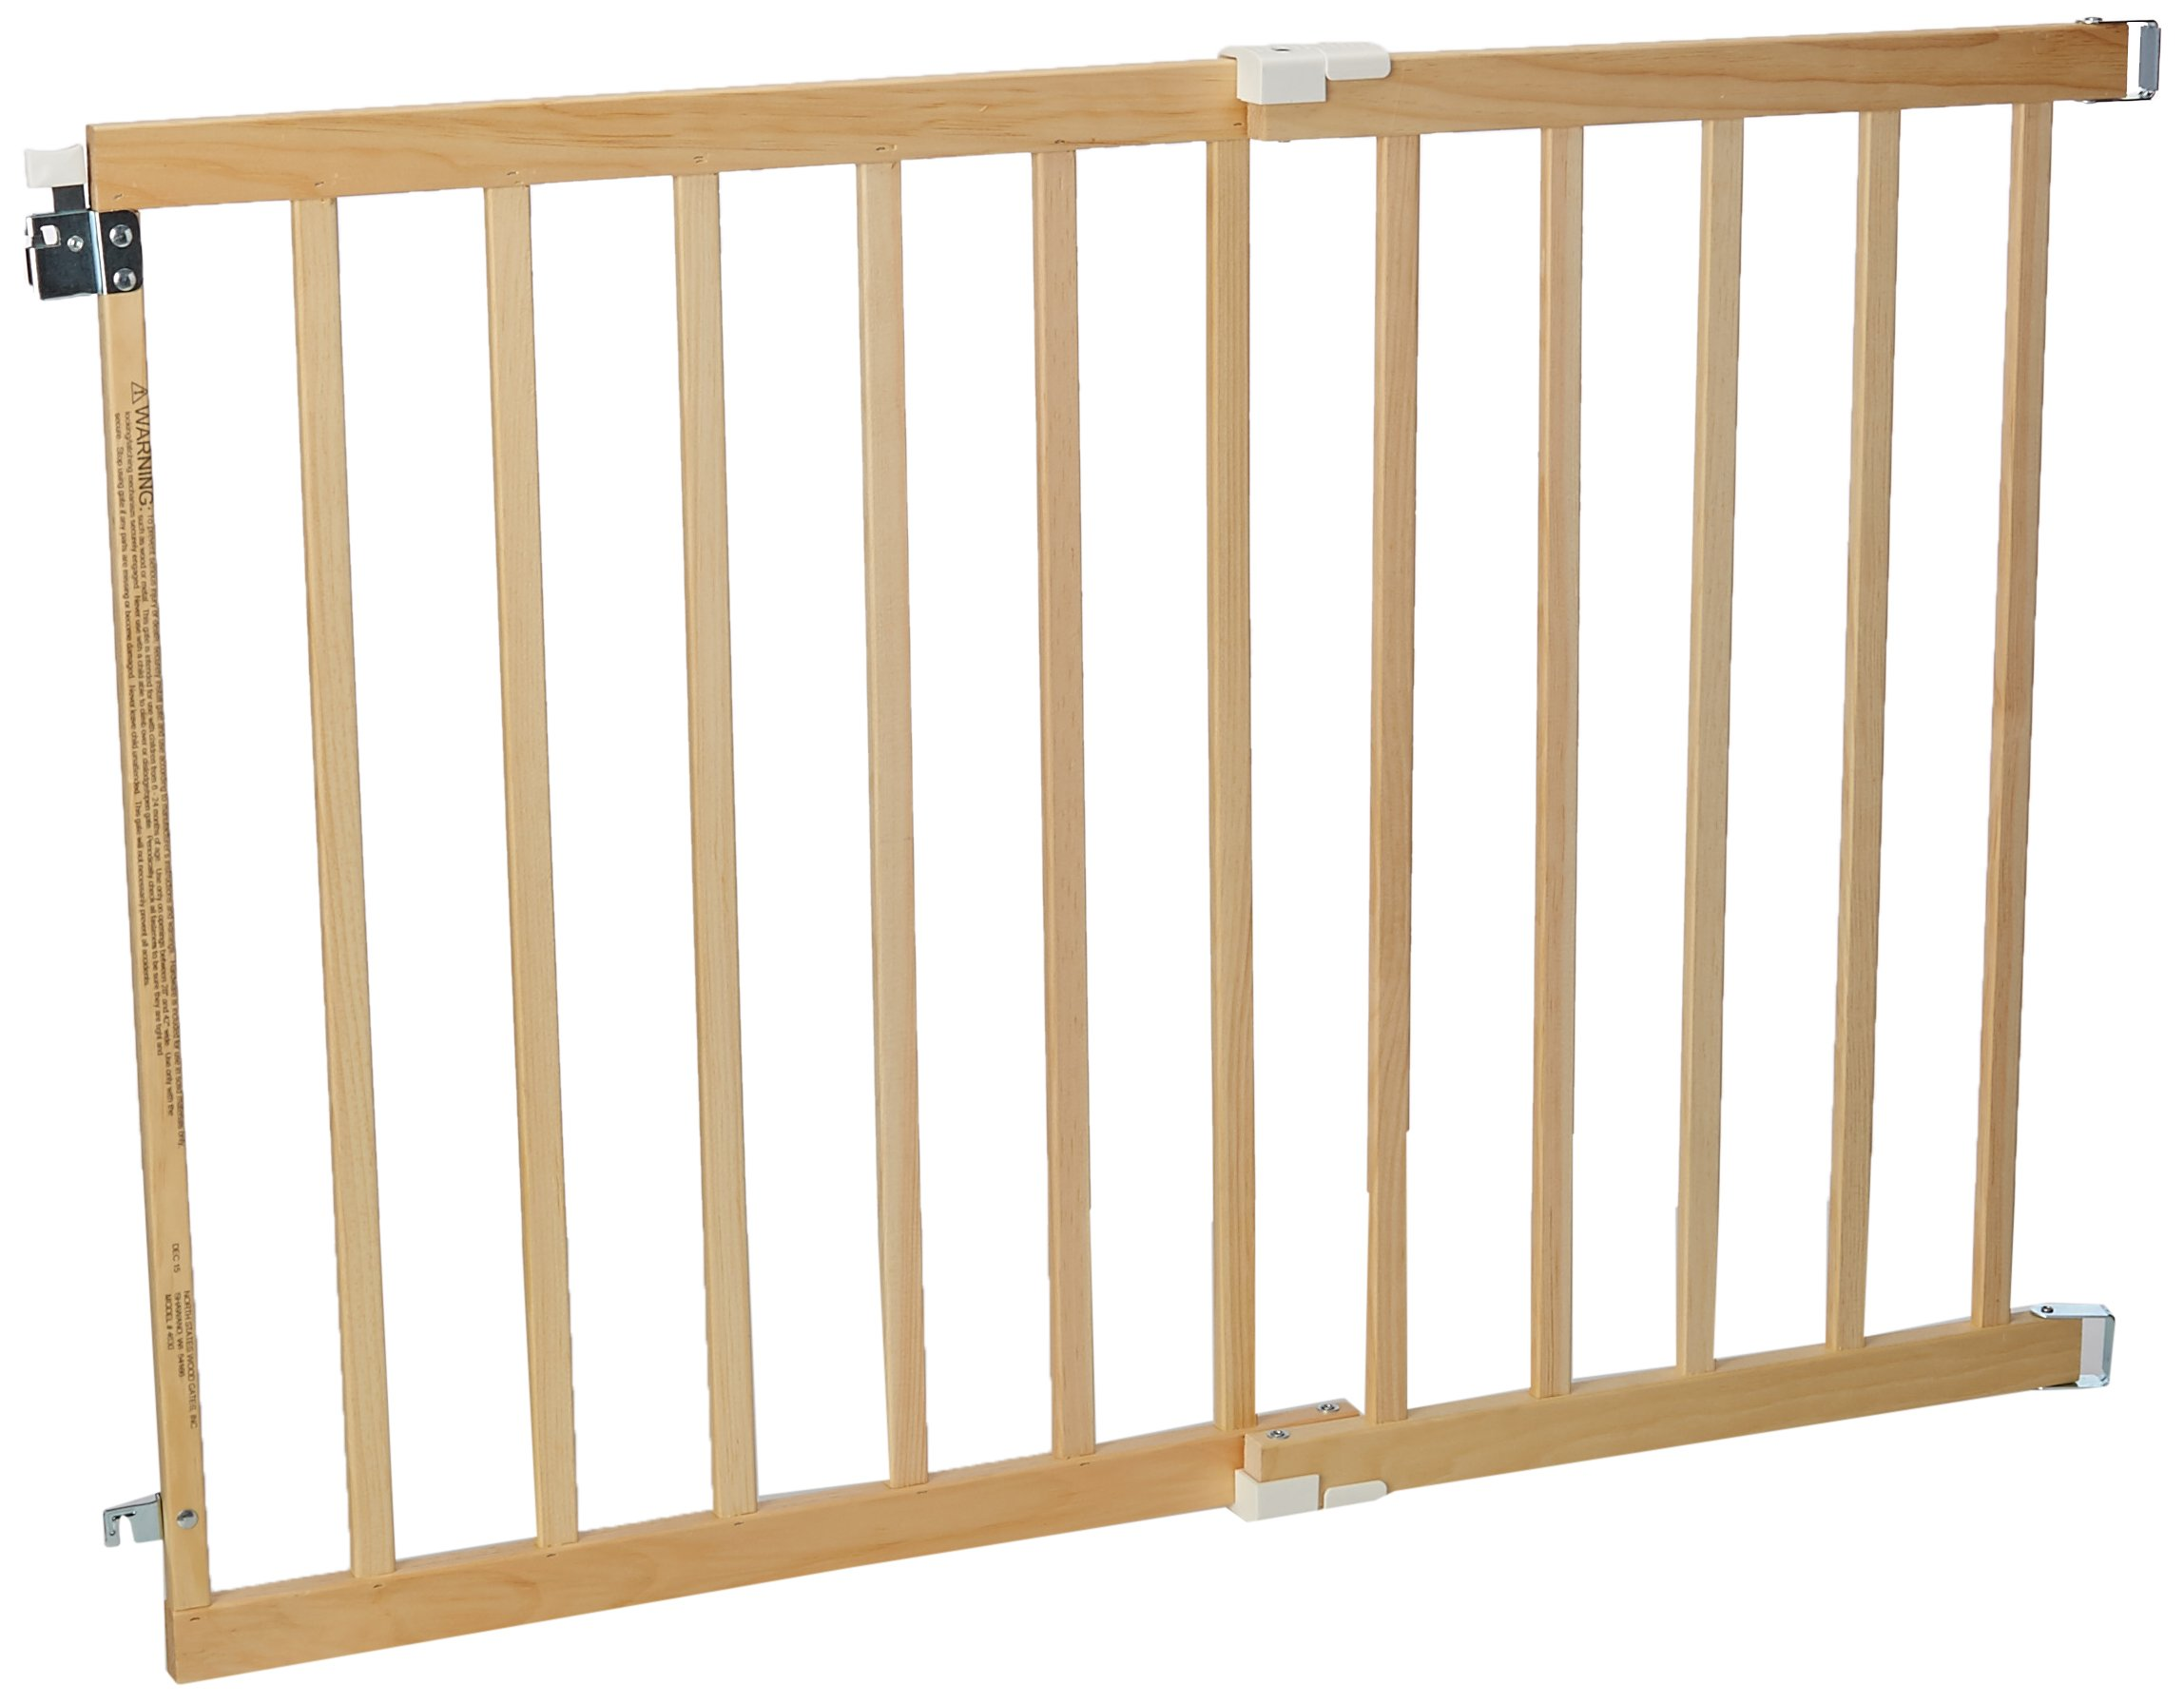 ''Stairway Swing Gate'' by North States: Ideal for standard stairways, with solid wood construction and one-handed operation. Hardware mount. Fits openings 28'' to 42'' wide (30'' tall, Natural wood)